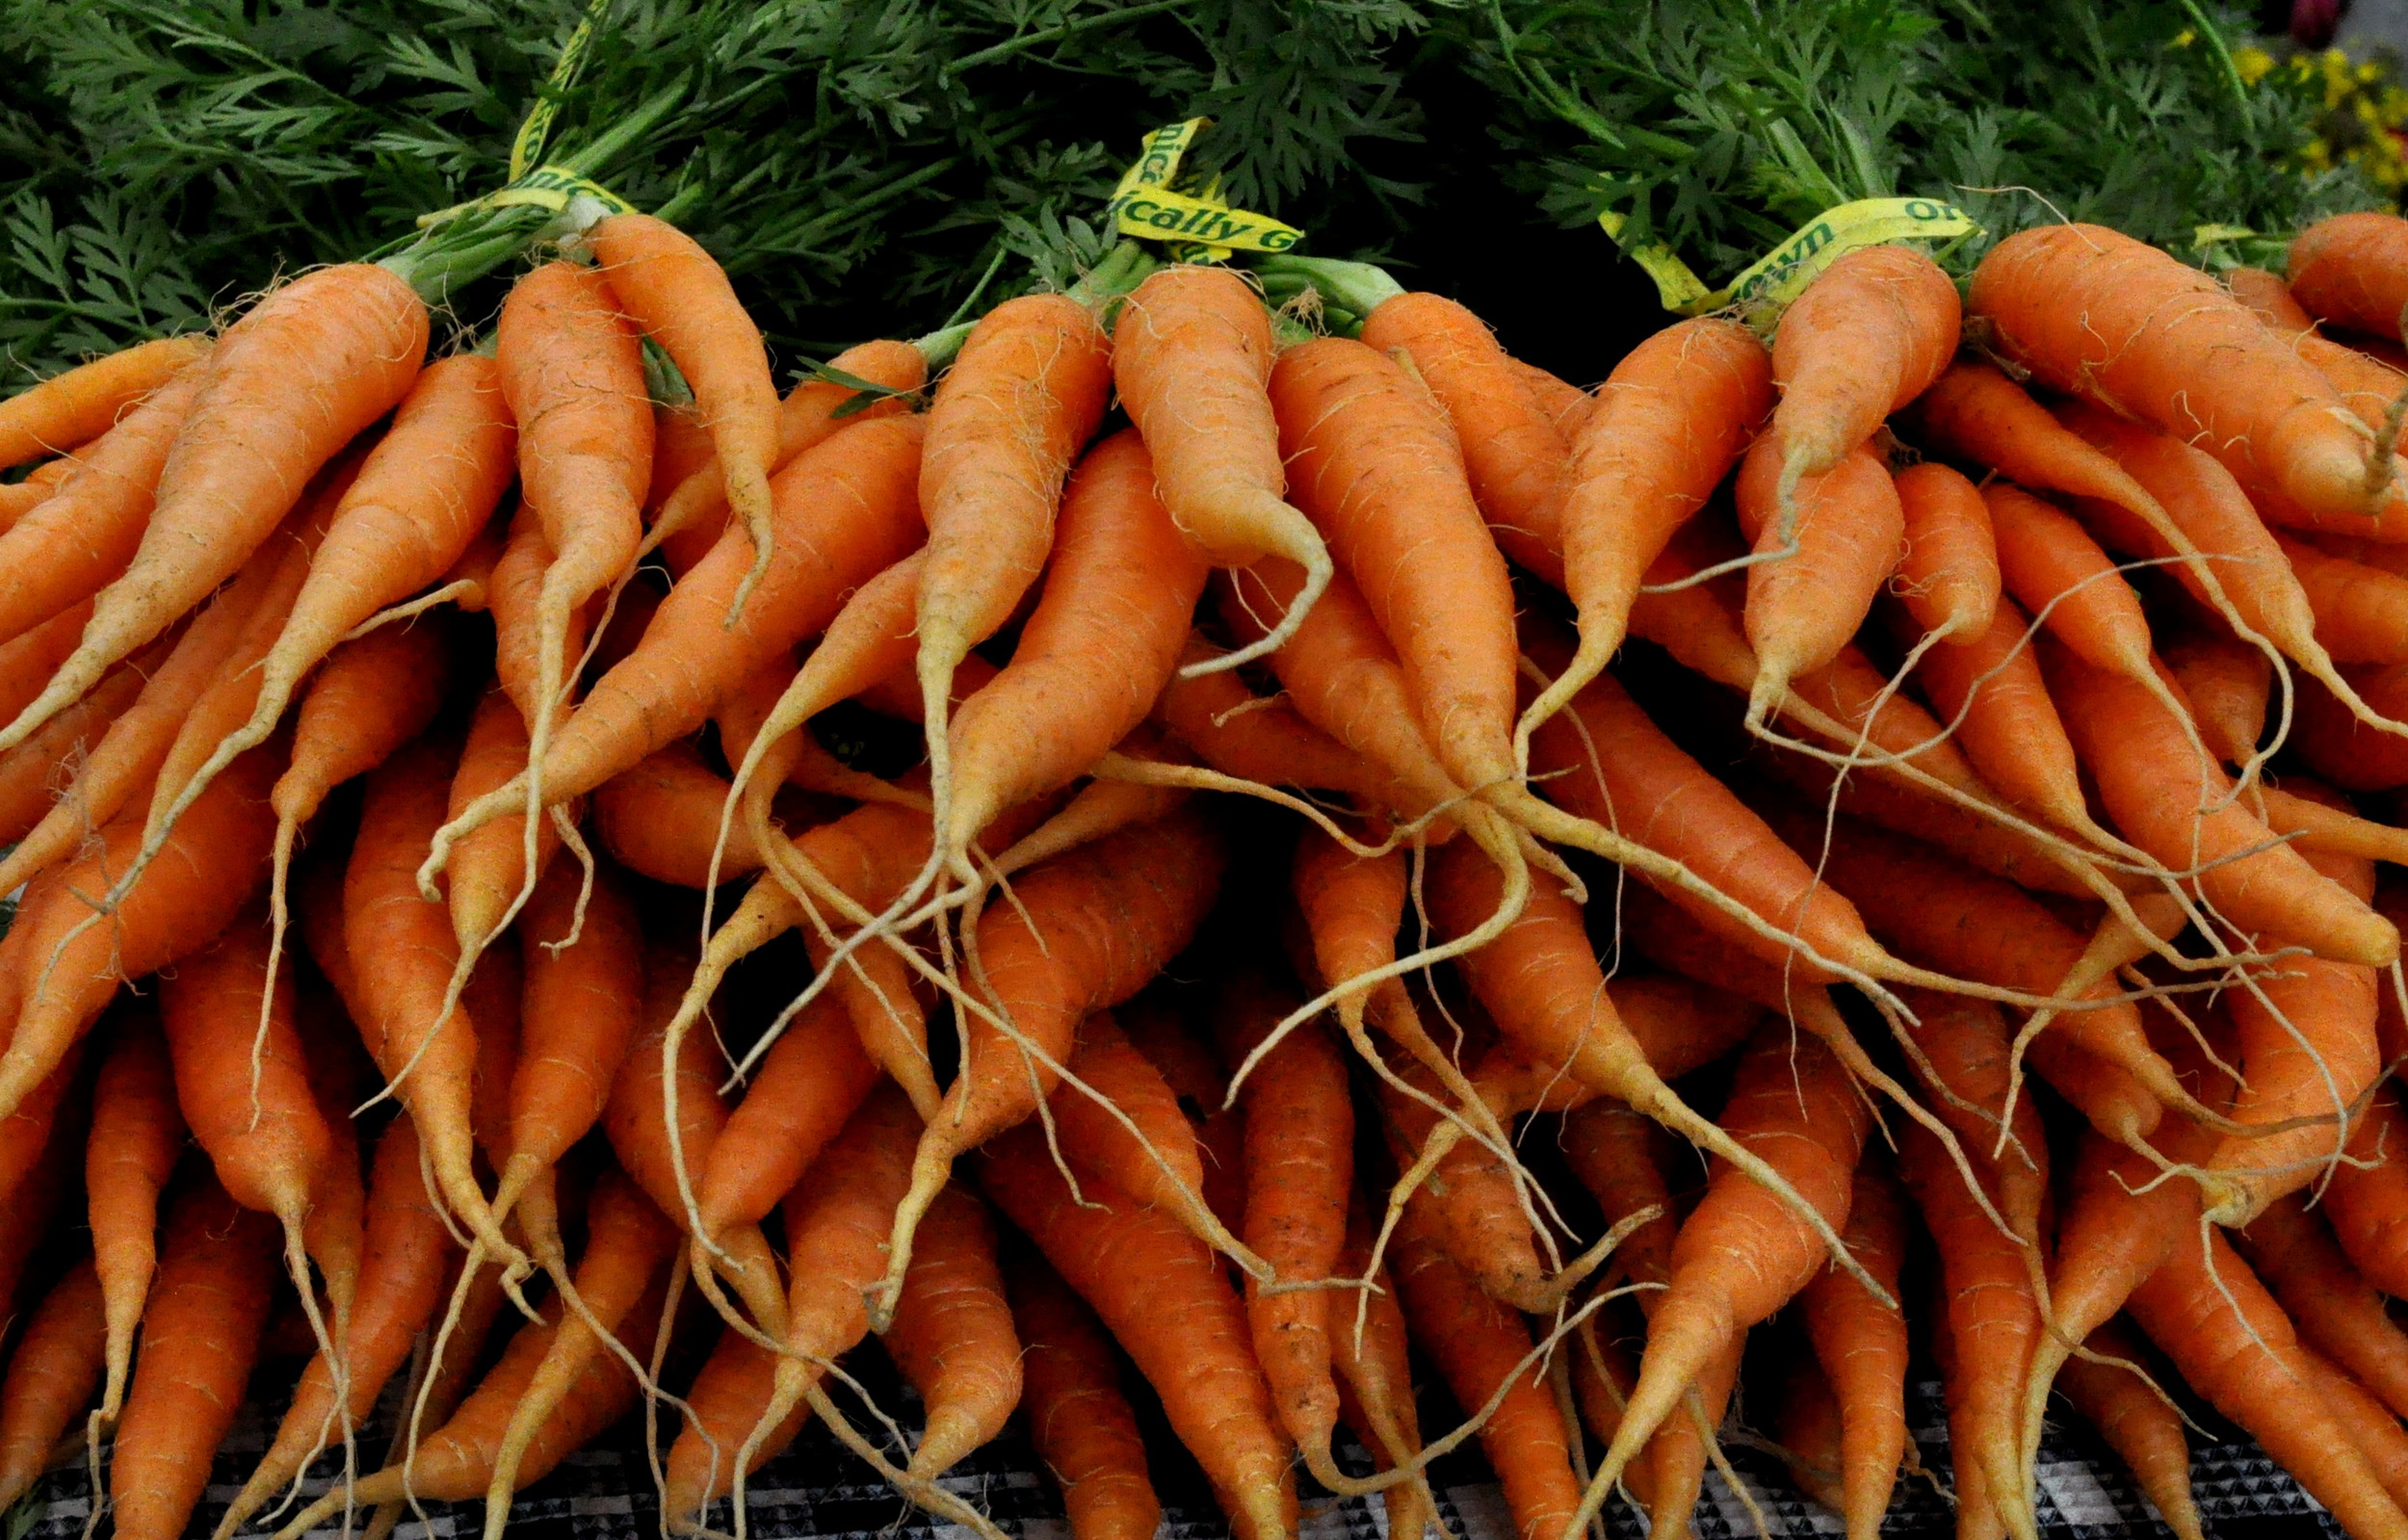 Carrots from Colinwood Farms. Photo copyright 2013 by Zachary D. Lyons.